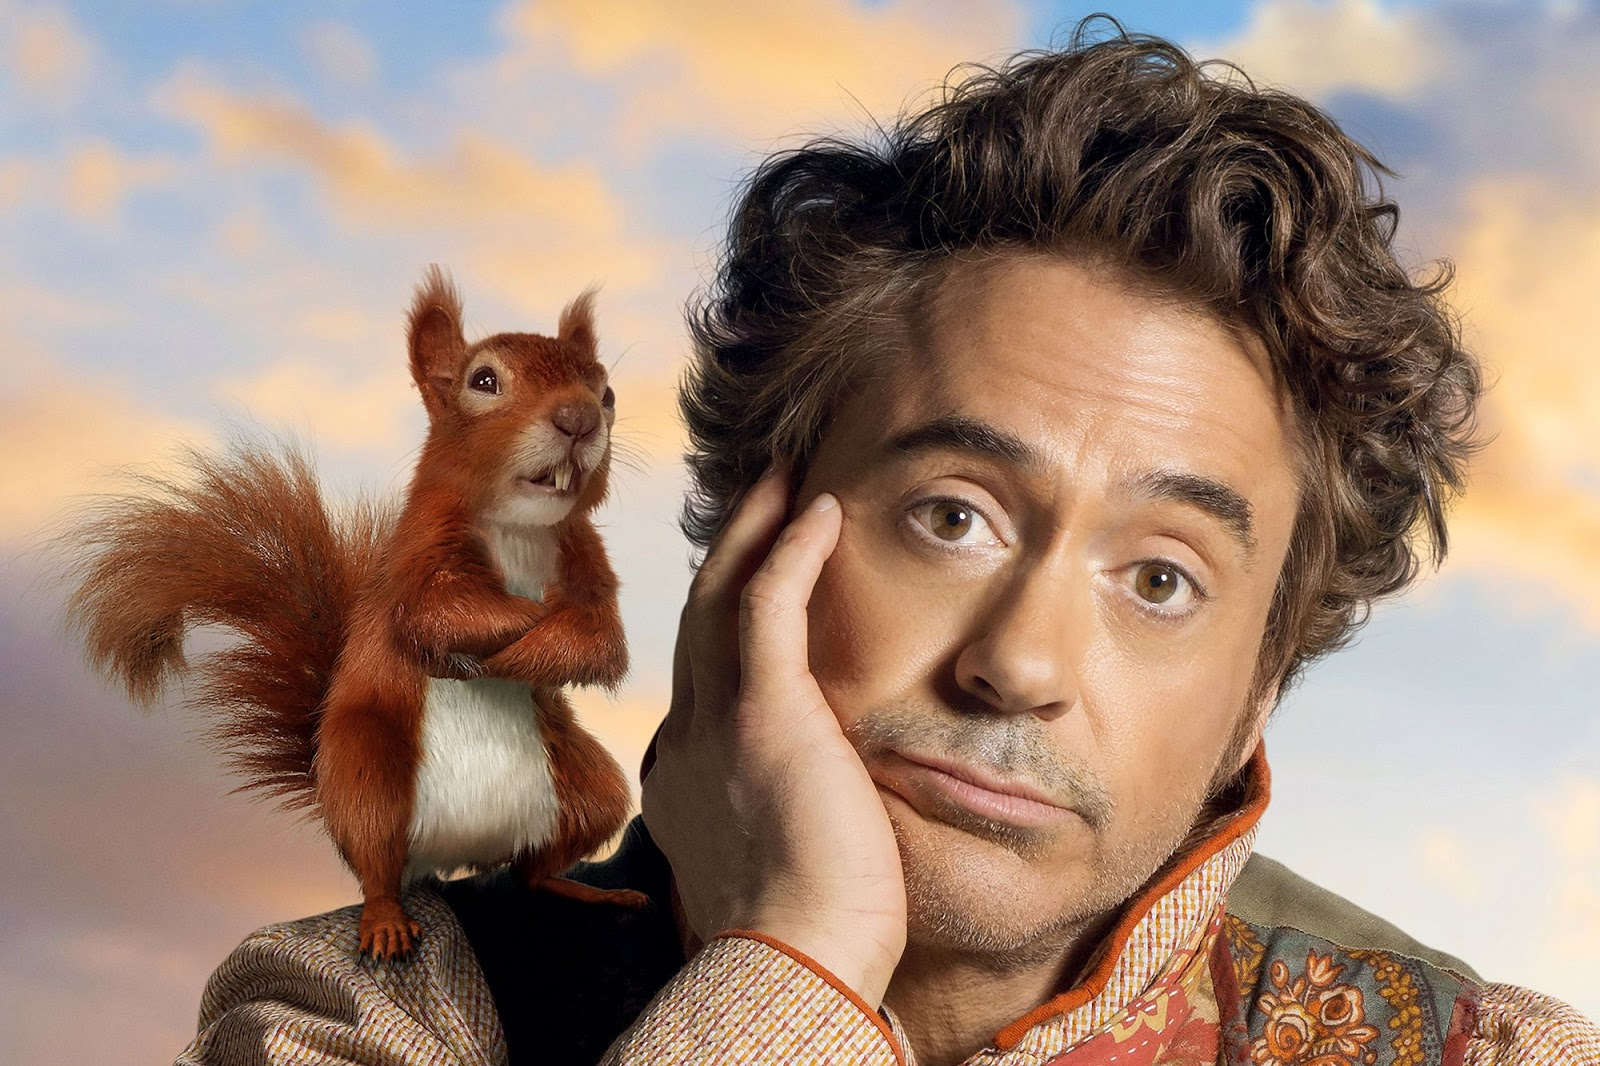 MOVIES: Dolittle - Review